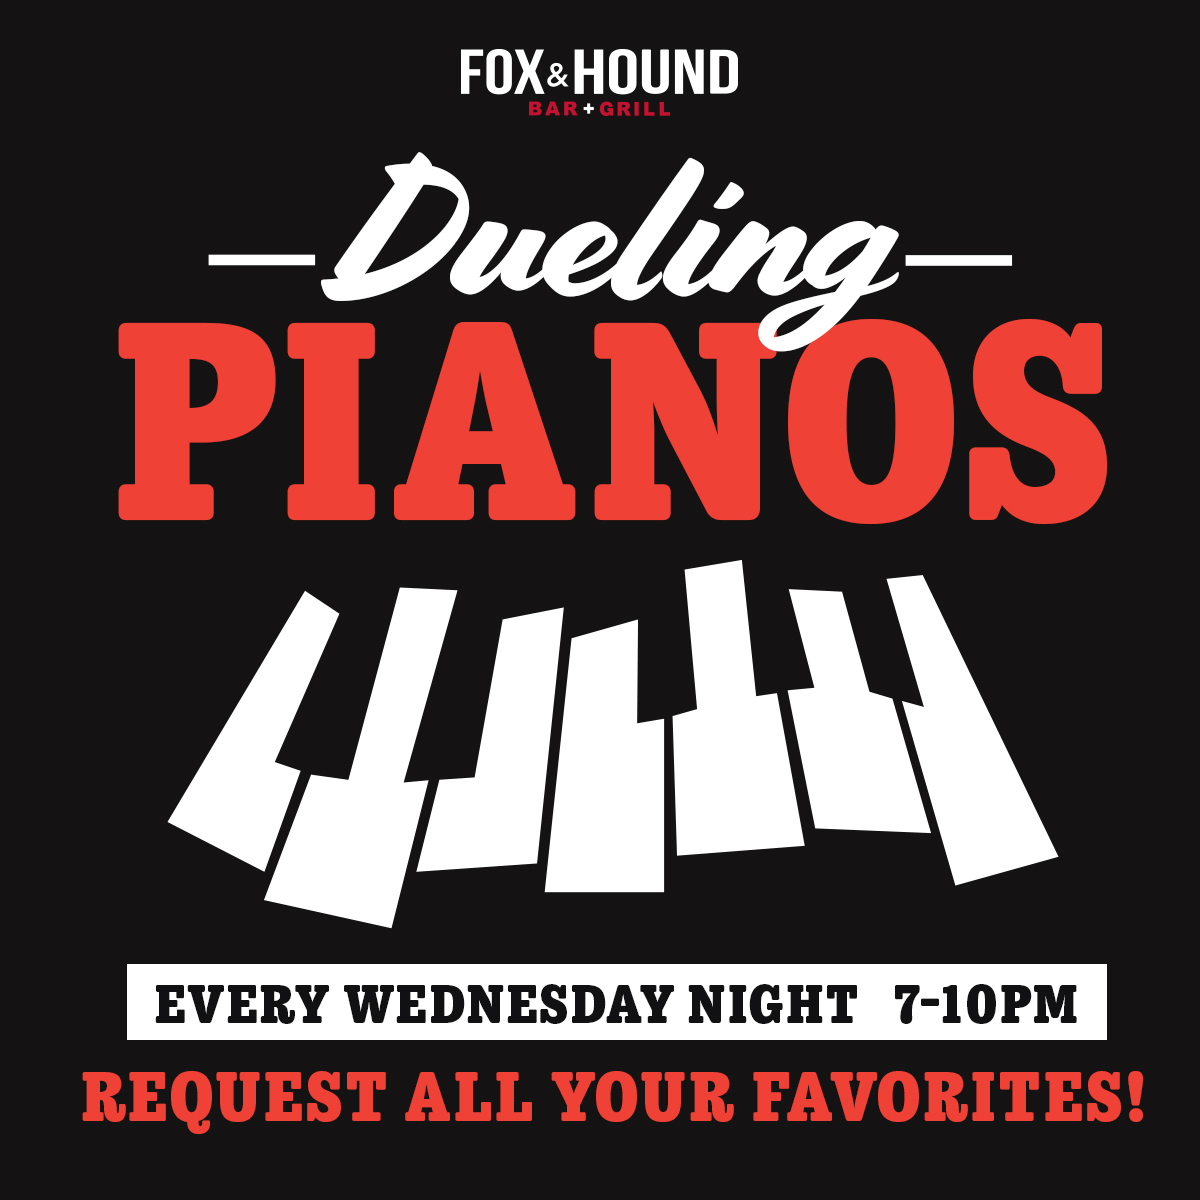 Dueling Pianos - Every Wednesday